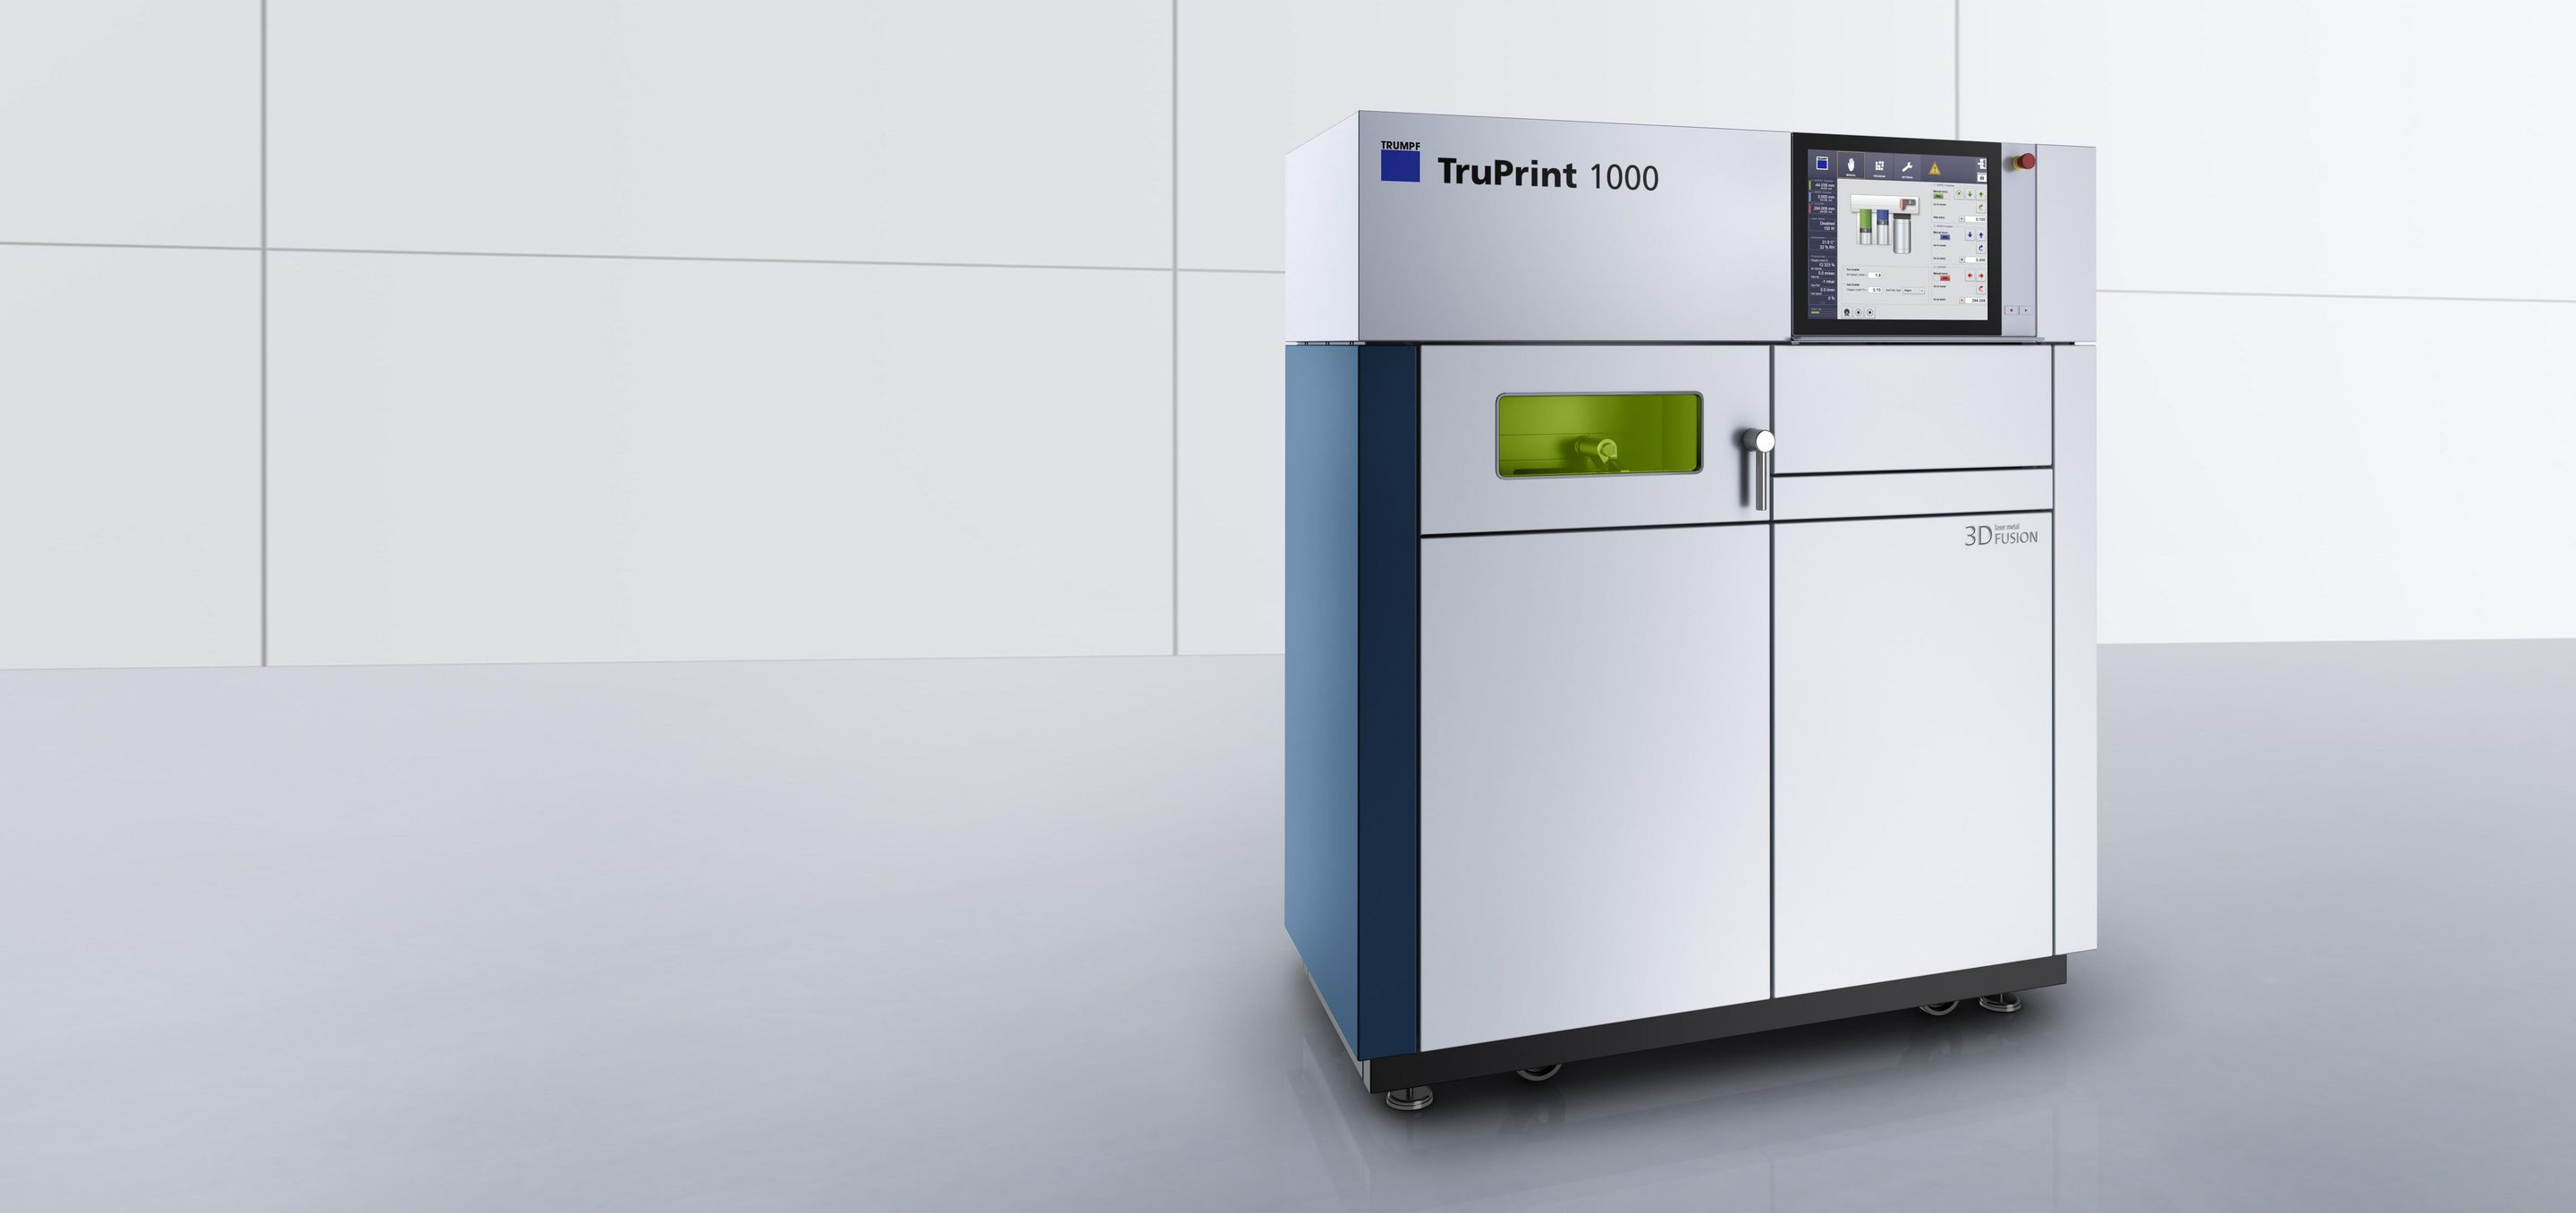 Trumpf TruPrint laser metal fusion machine. Image via Trumpf.